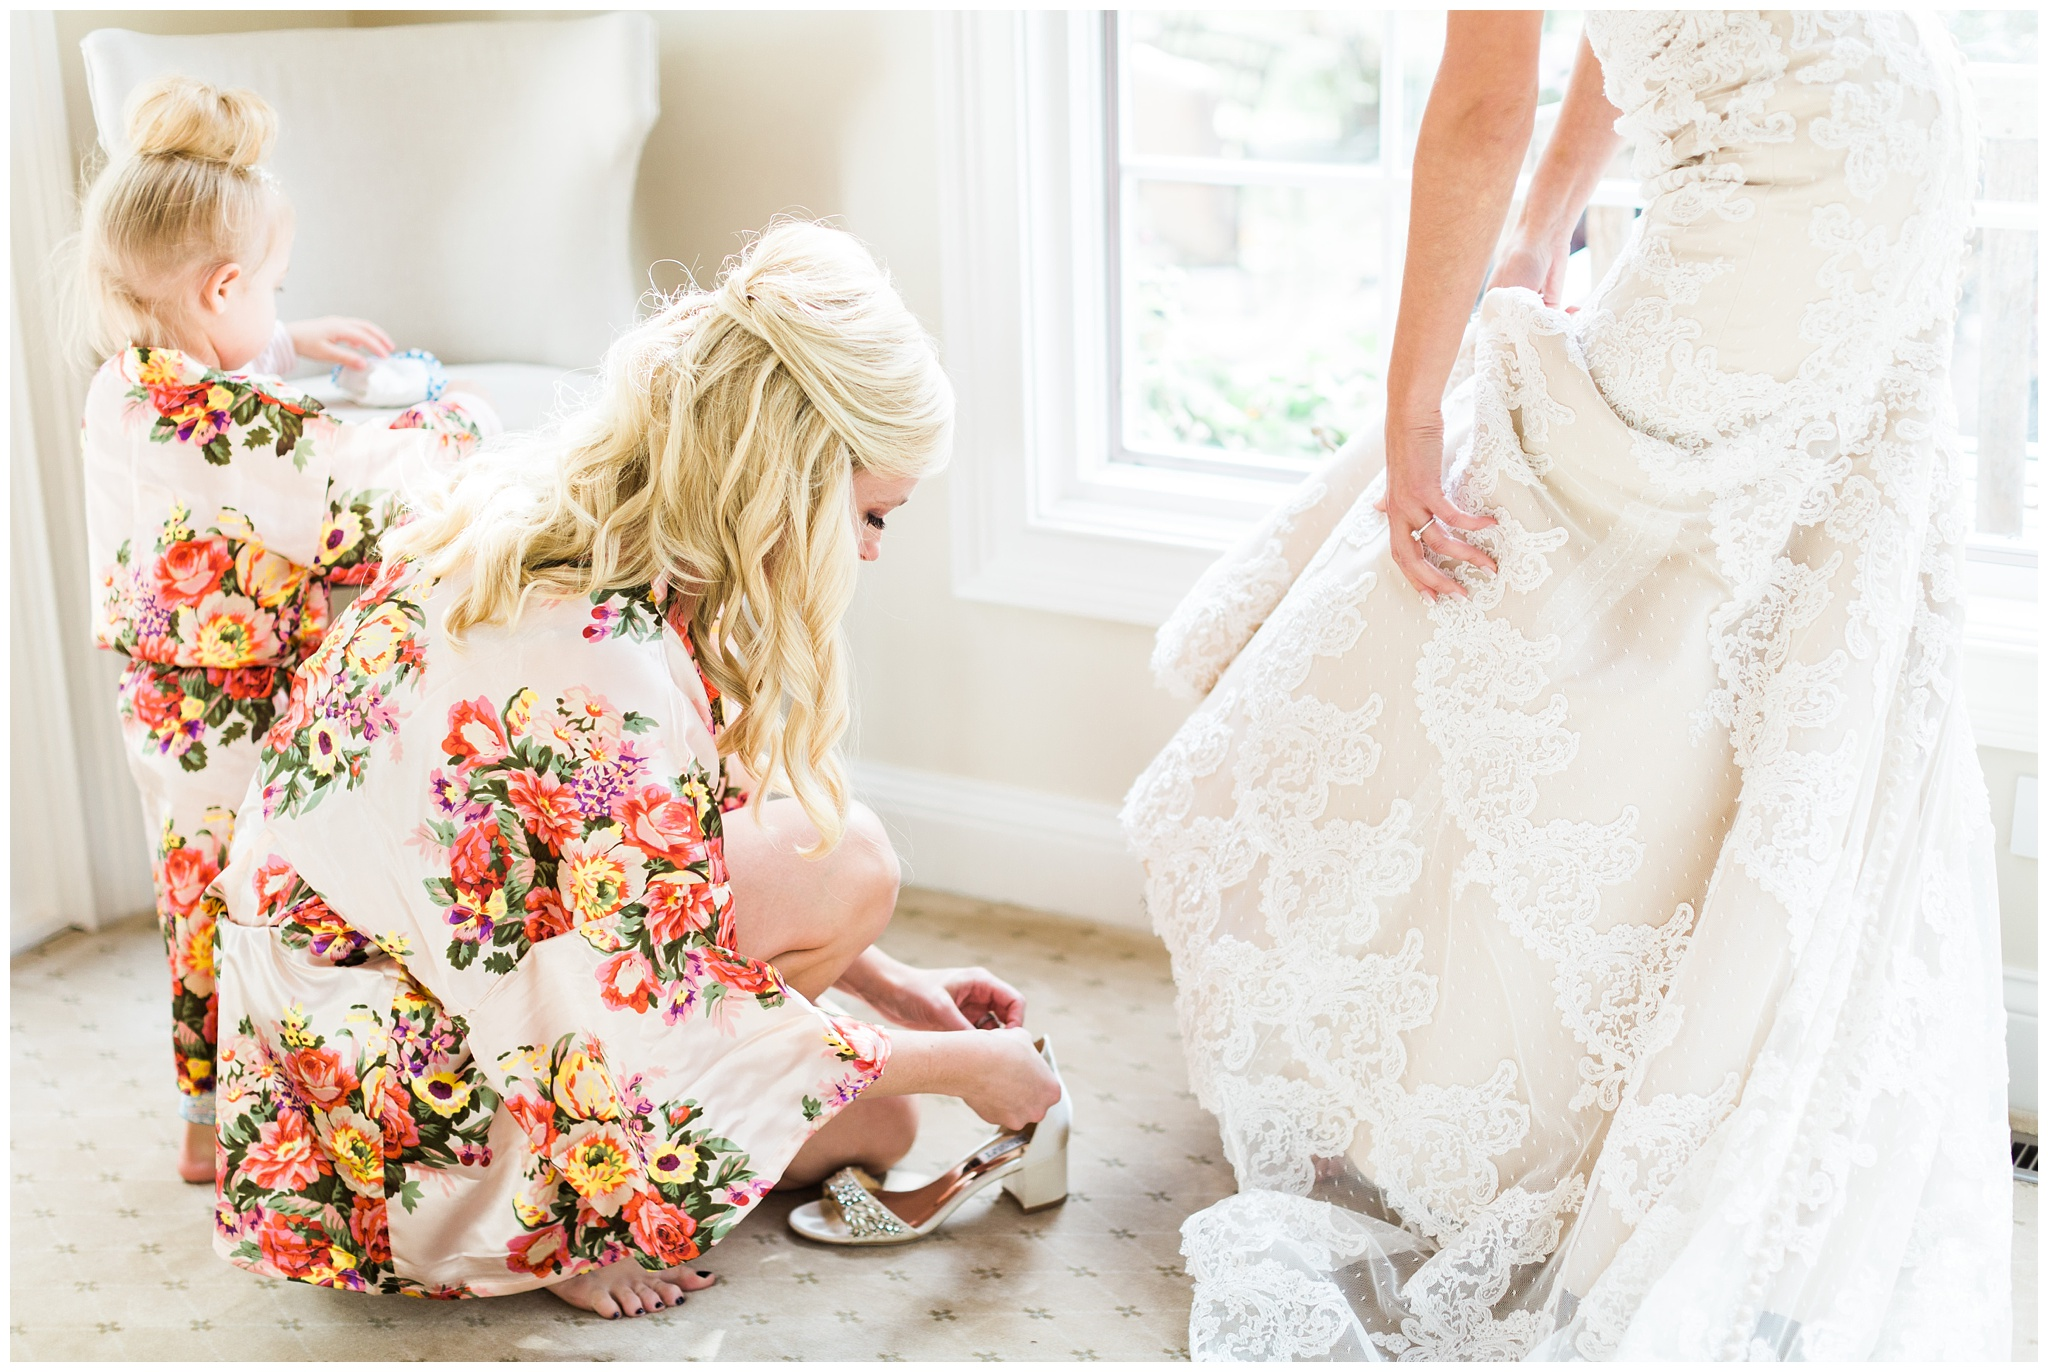 RebeccaHaleyPhotography_BarringtonPhotographer_ChicagoPhotographer_ChicagoWedding_0009.jpg